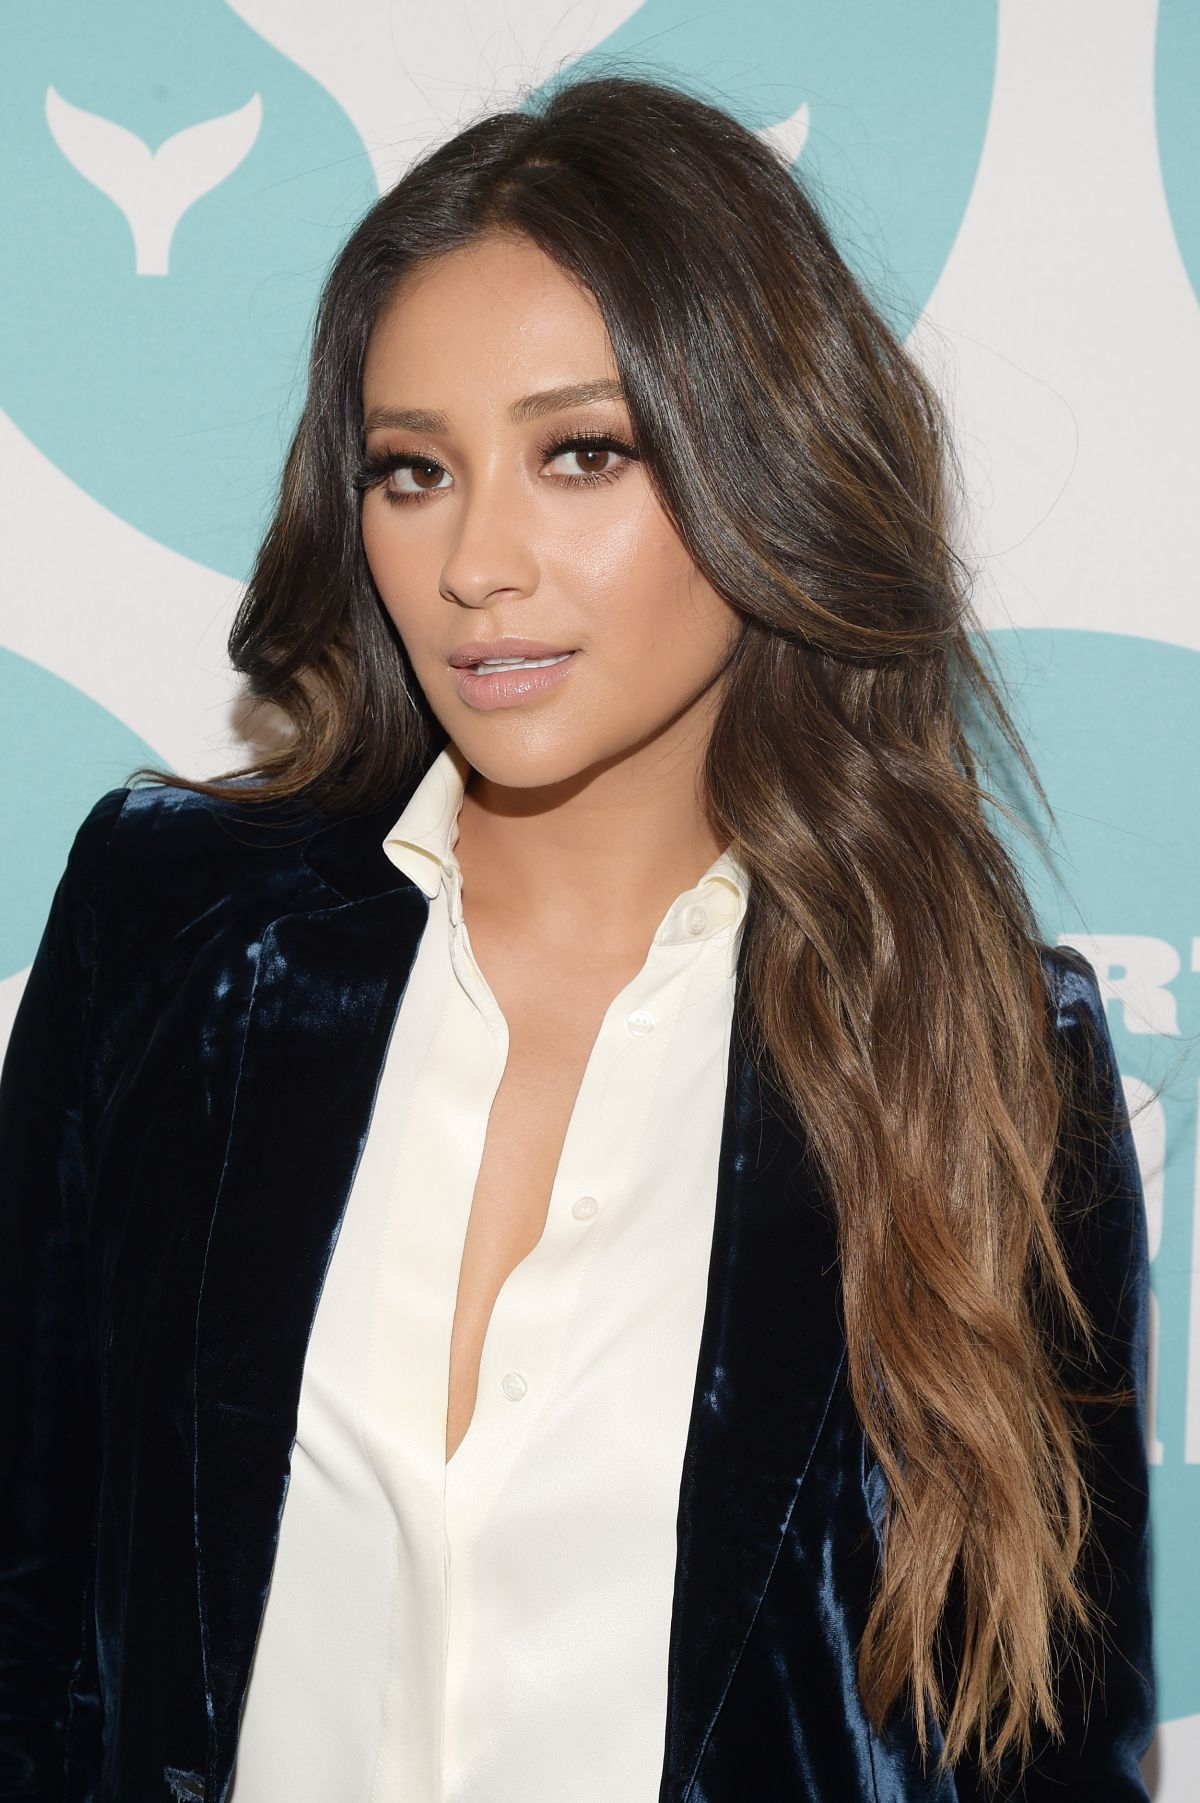 SHAY MITCHELL at 9th Annual Shorty Awards in New York 04/23/2017